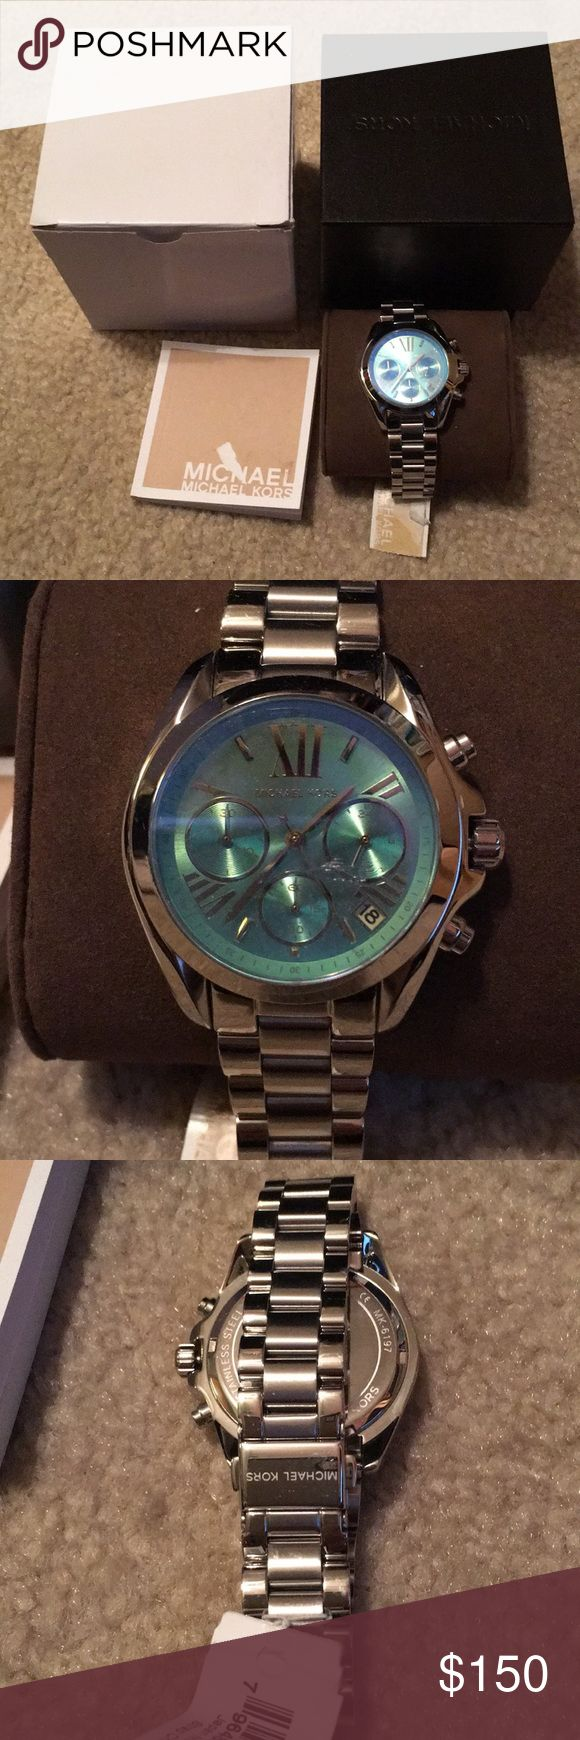 Michael Kors Emerald Face Watch New with tags and original inner and outer box and manual.  This was a gift for my girlfriend and she is not a watch person. It has a polished steel band with emerald colored face and gold roman numerals. Still has the plastic on it Michael Kors Accessories Watches